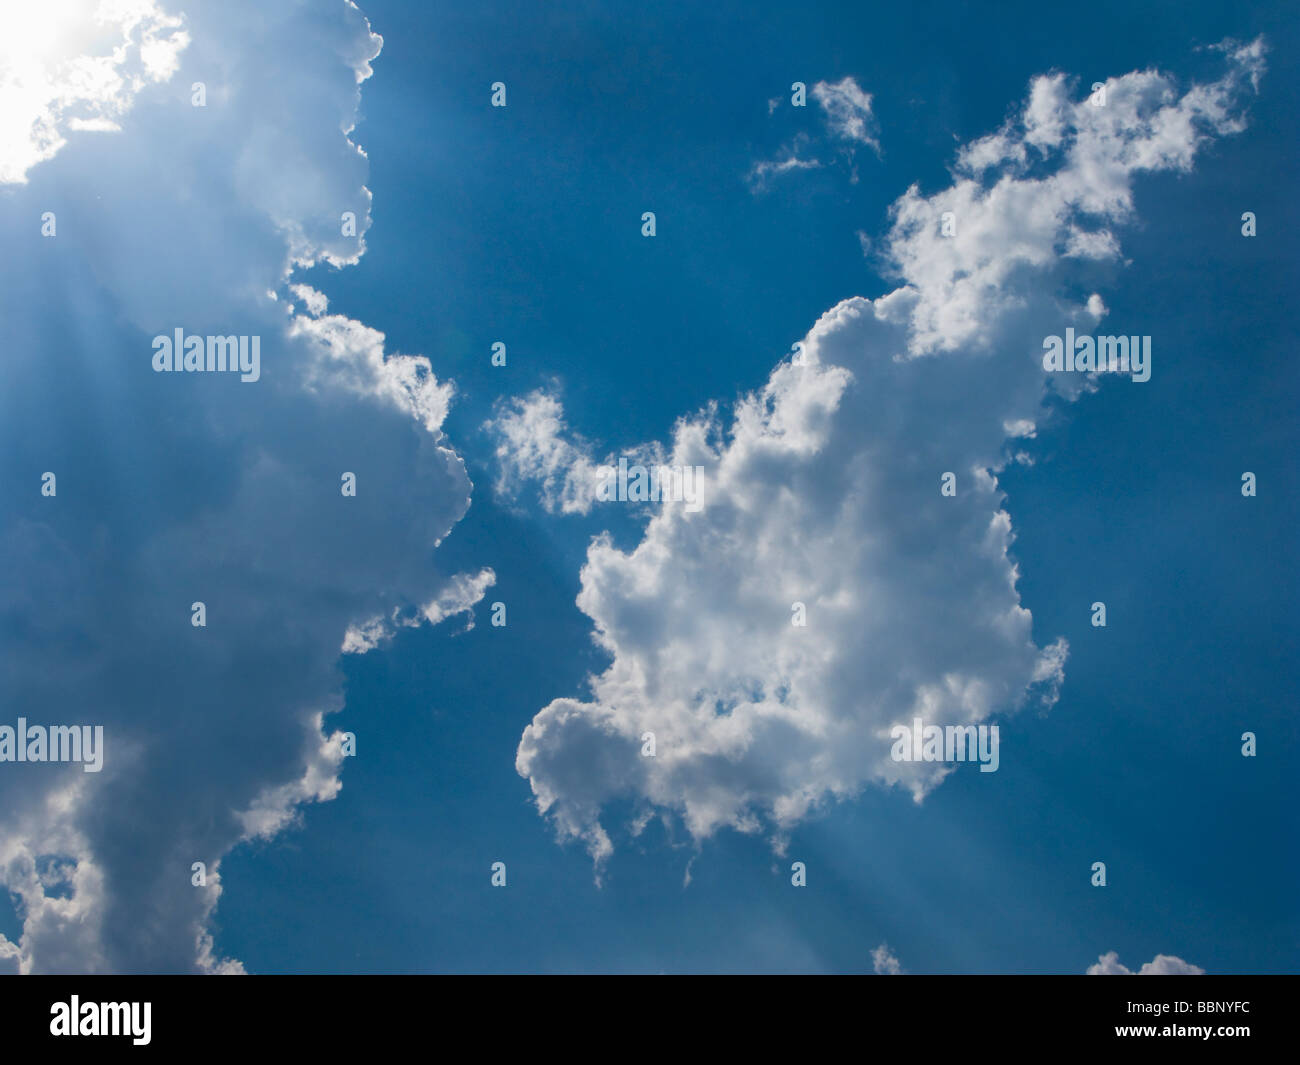 Blue sky with fluffy white clouds and sun rays - Stock Image